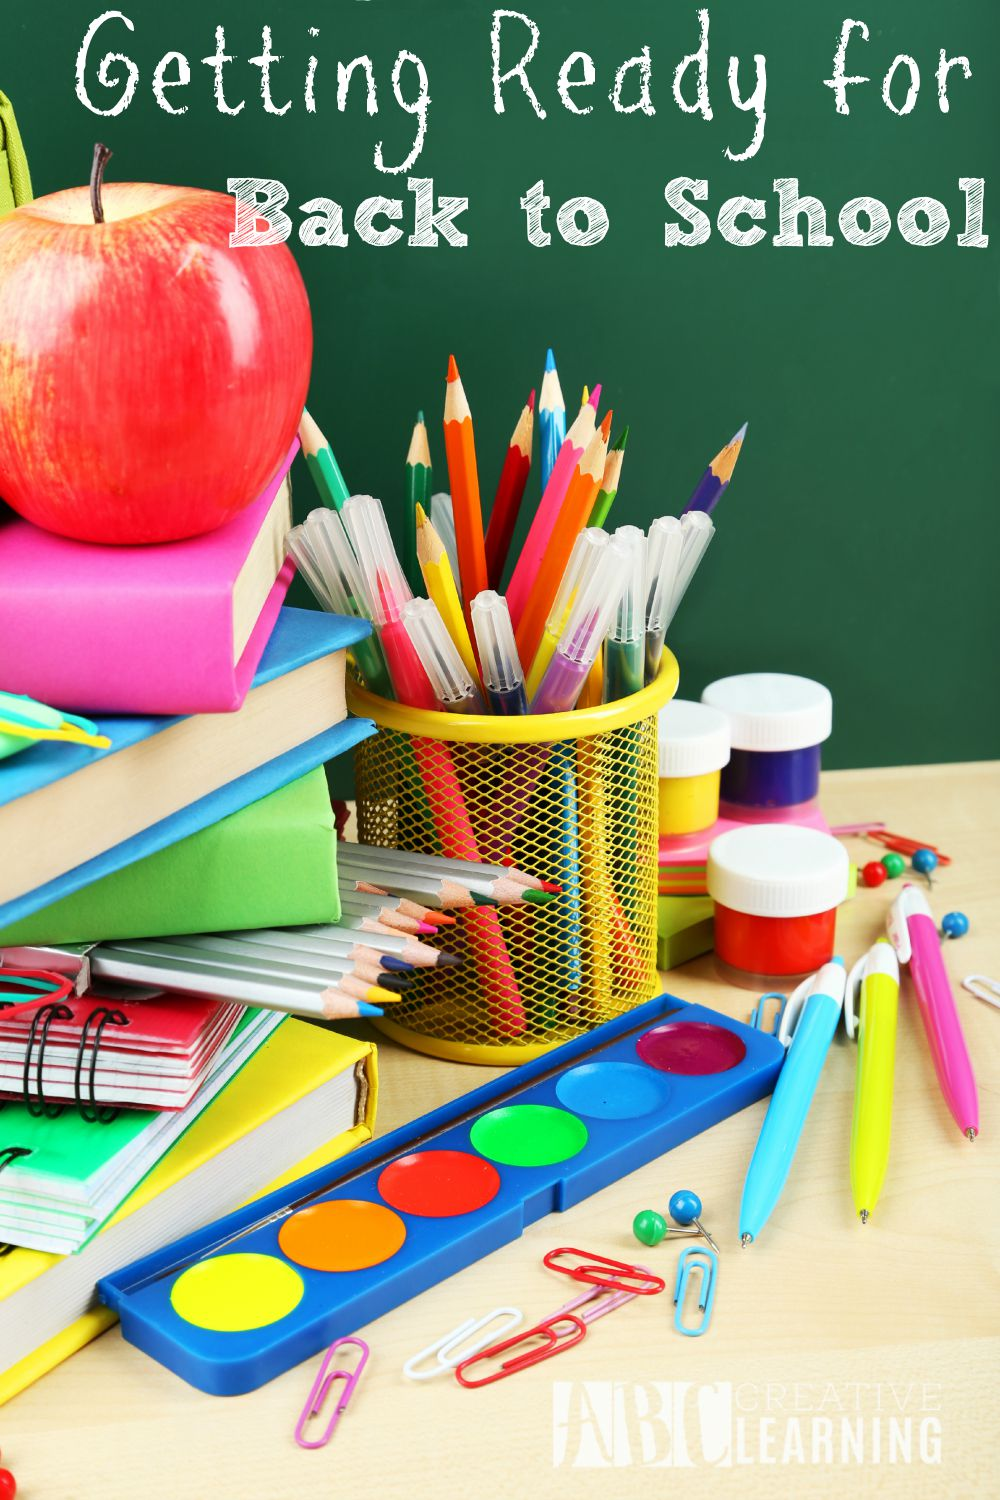 Tips For Getting Kids Ready for Back to School - simplytodaylife.com